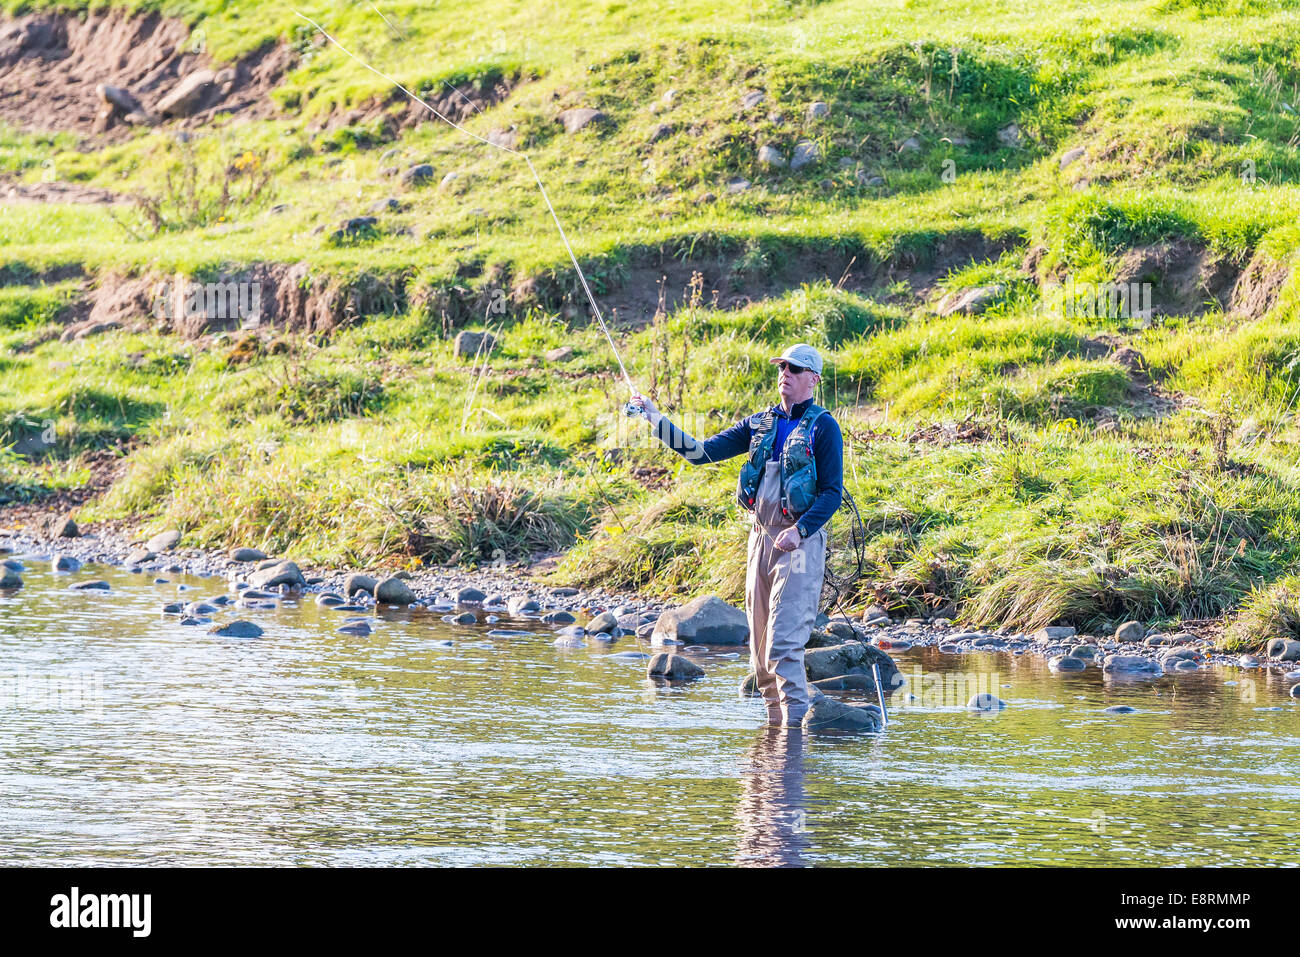 Fly fisherman angler in the River Wharfe at Bolton Abbey, North Yorkshire - Stock Image